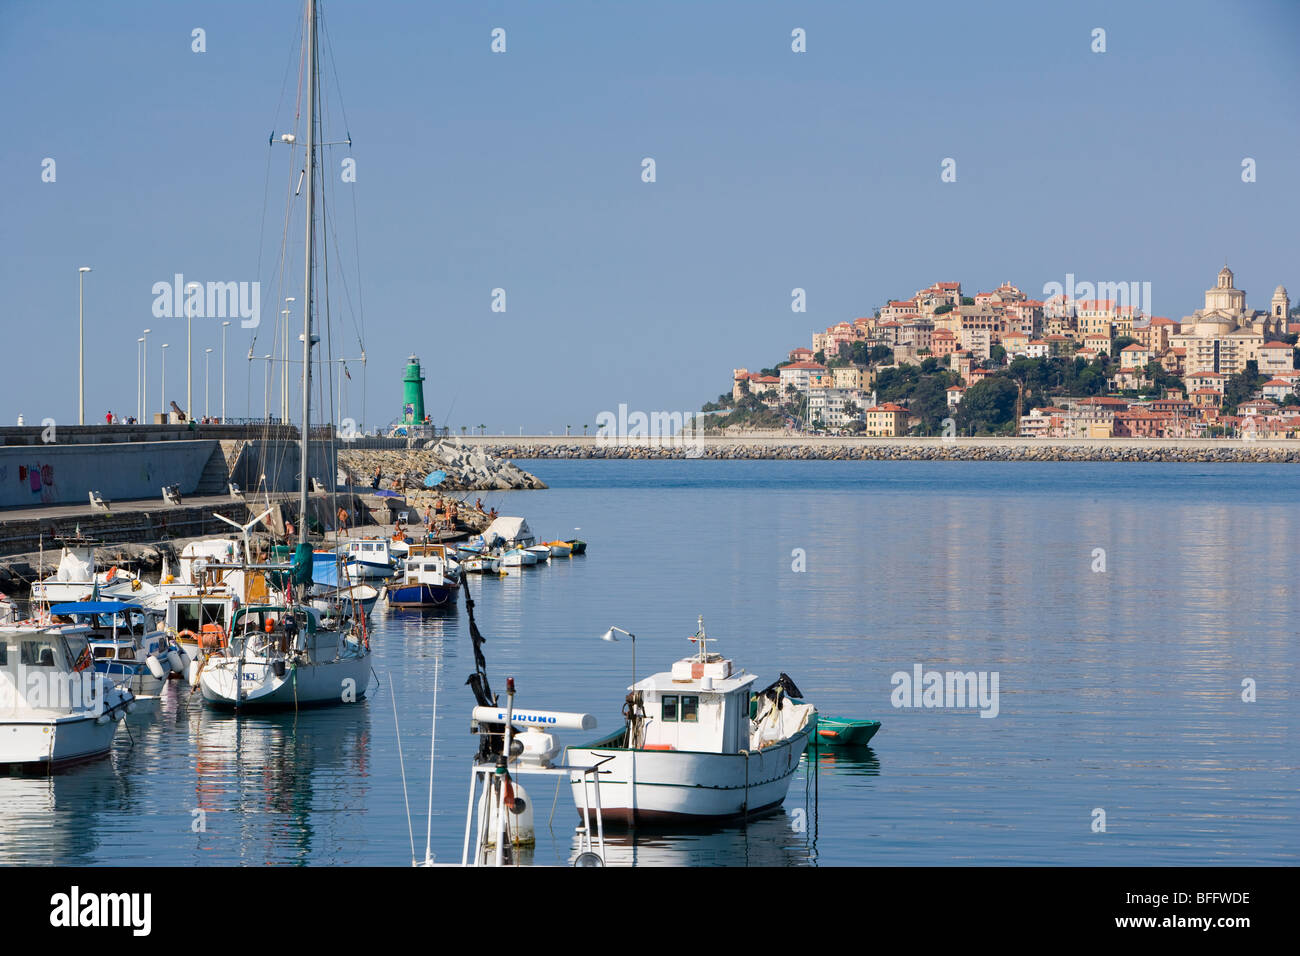 Harbour and boats with Imperia in the background, liguria, Italy - Stock Image